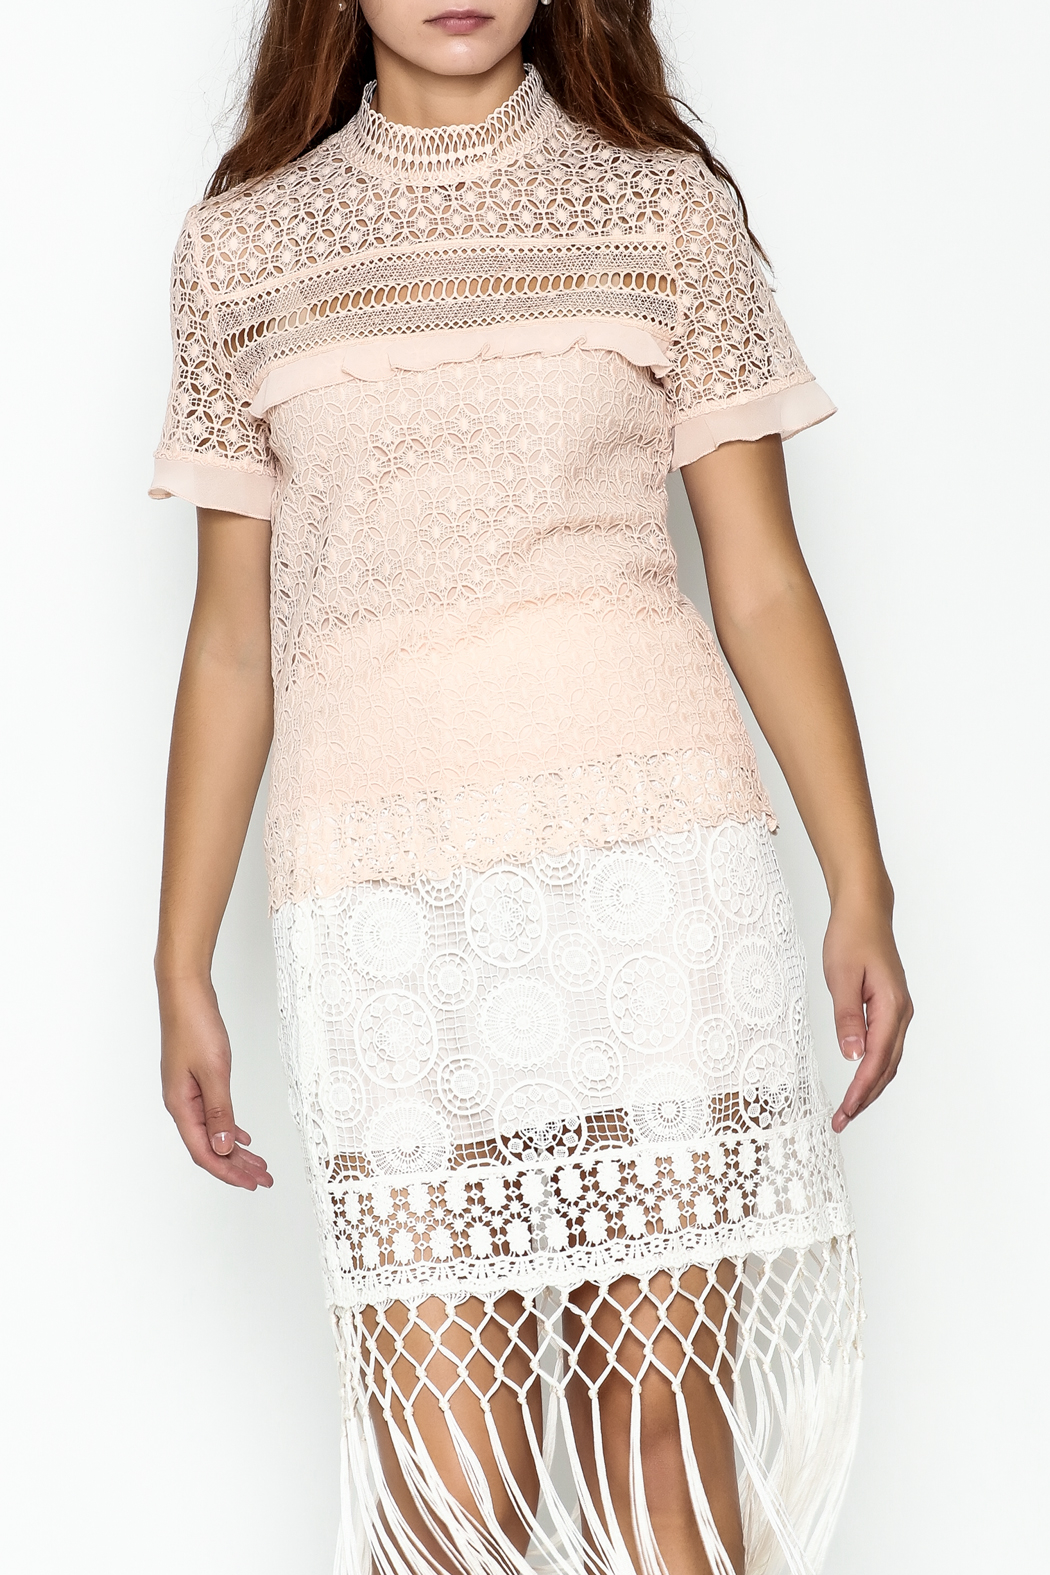 MOMNI BOUTIQUE Aleandra Lace Top - Front Cropped Image